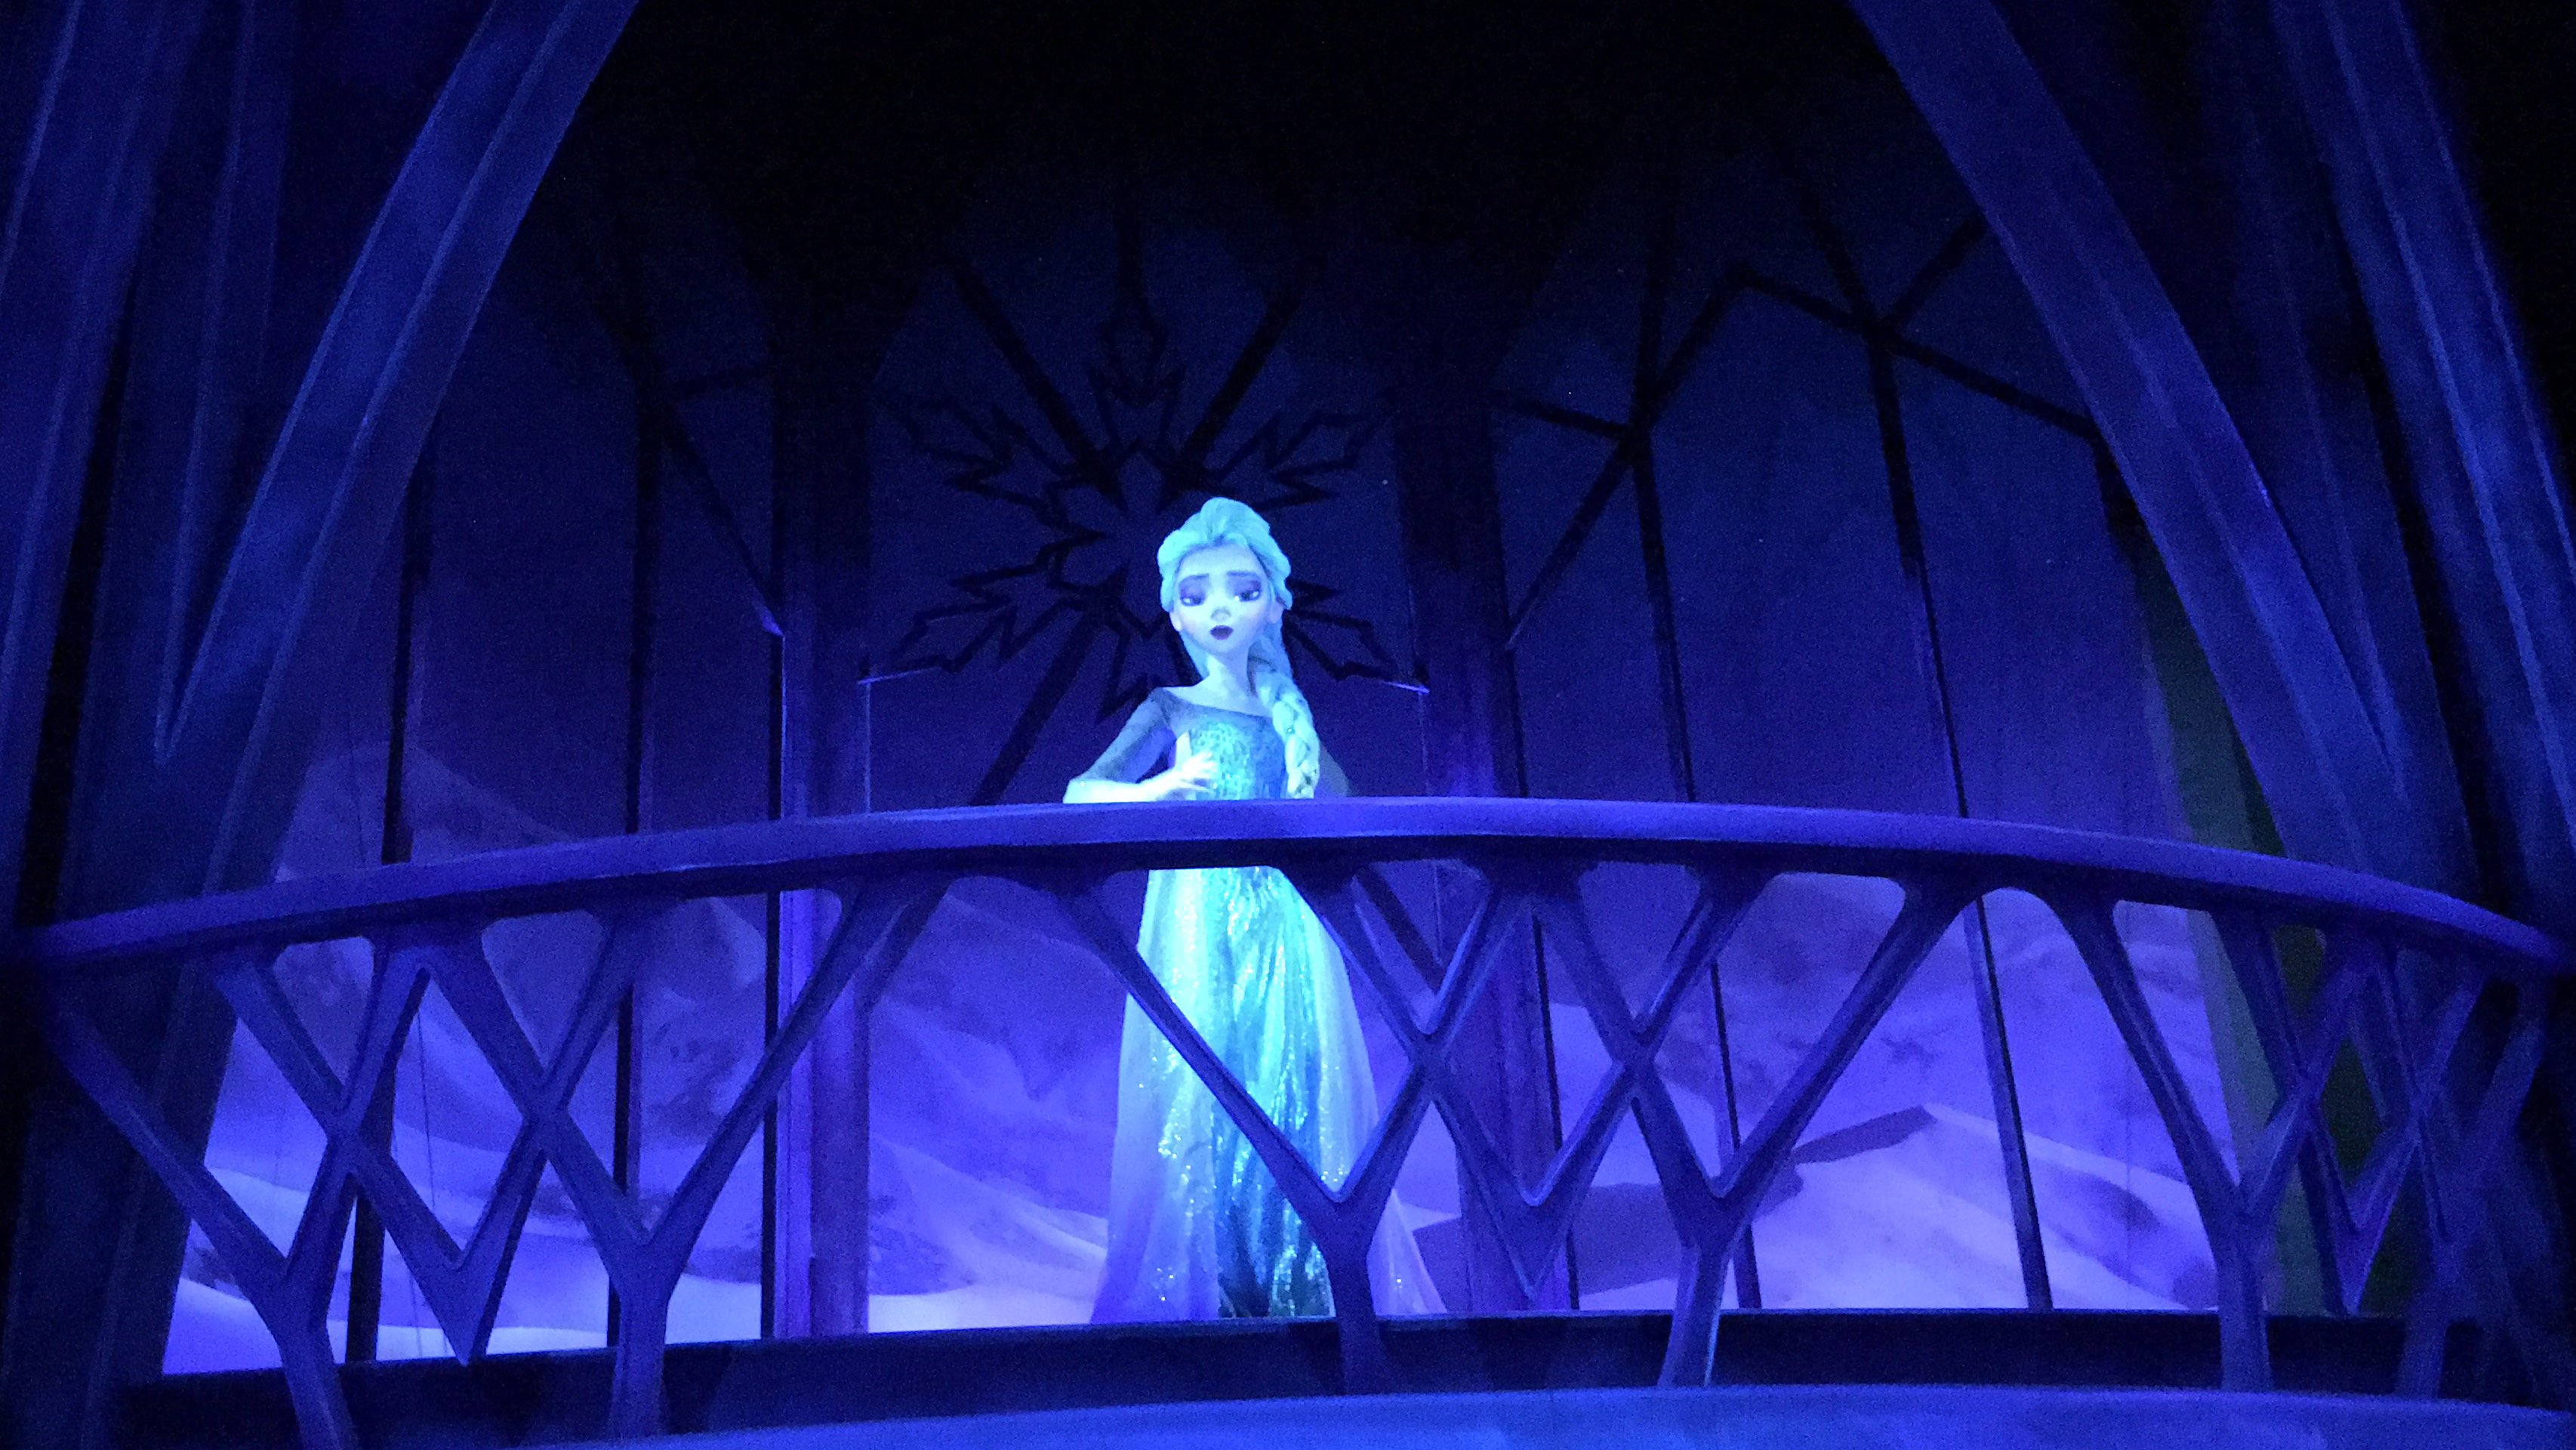 Frozen Ever After Brings Major Crowds to Epcot